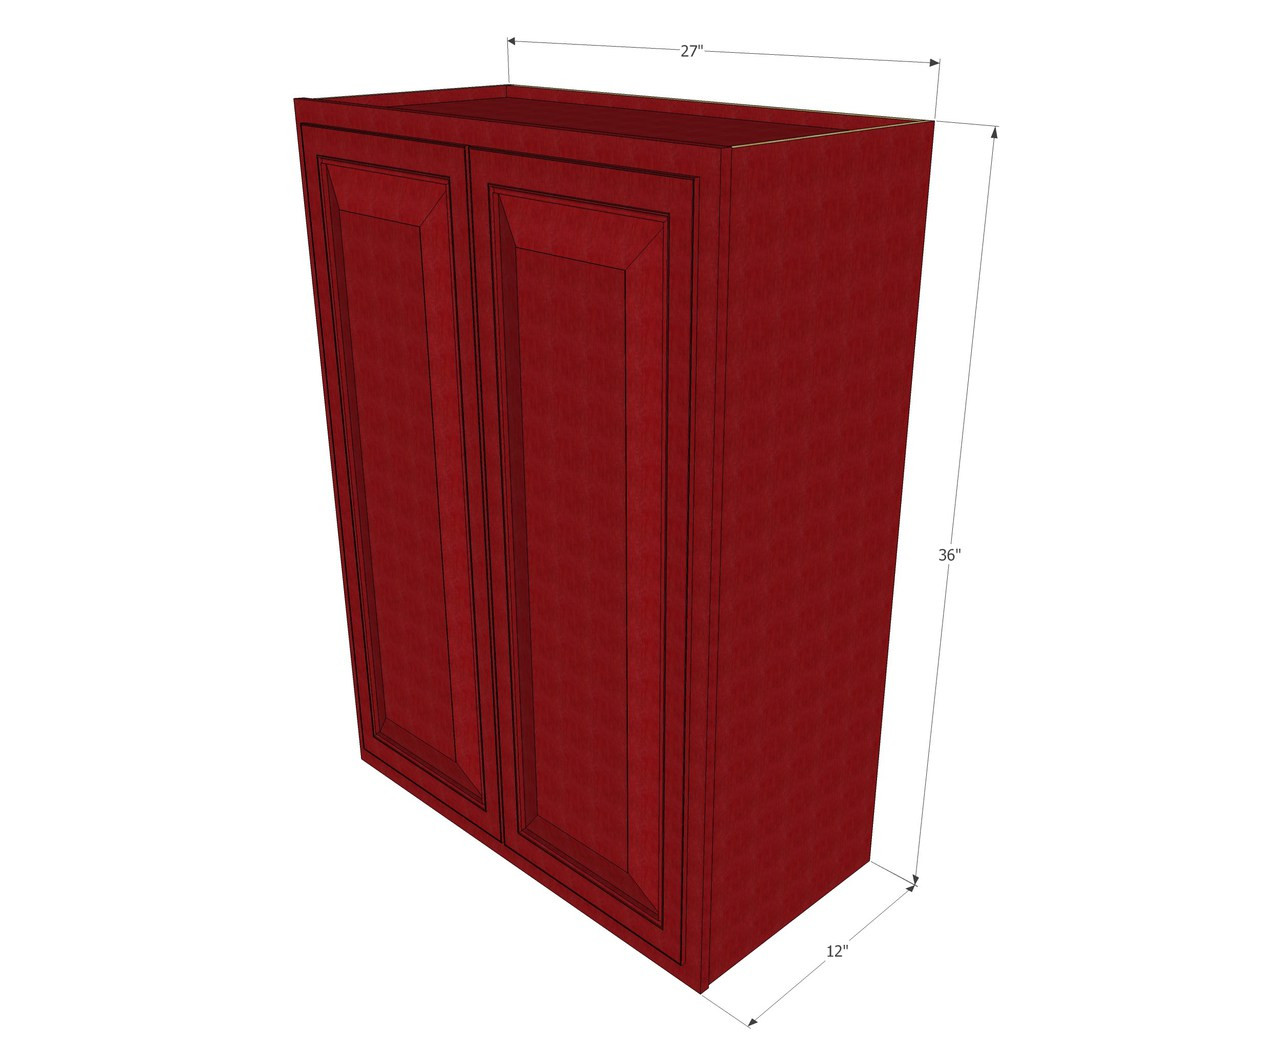 Large Double Door Grand Reserve Cherry Wall Cabinet 27 Inch Wide X 36 Inch High Kitchen